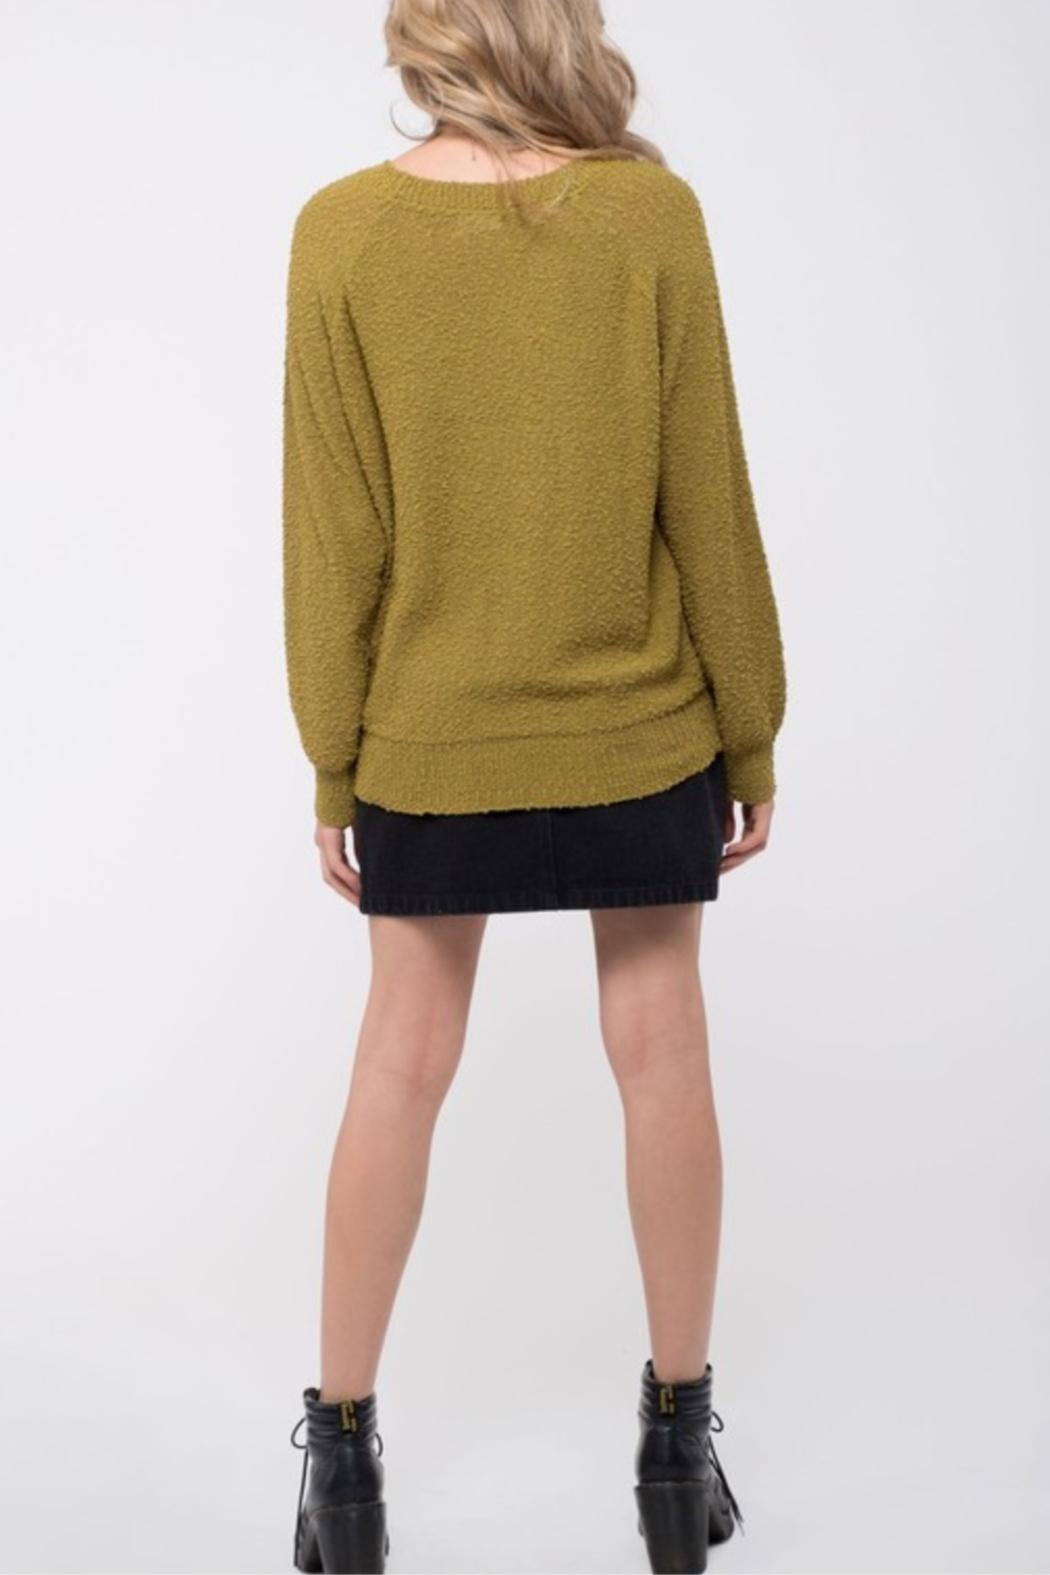 Blue Pepper Popcorn Knit Sweater - Front Full Image